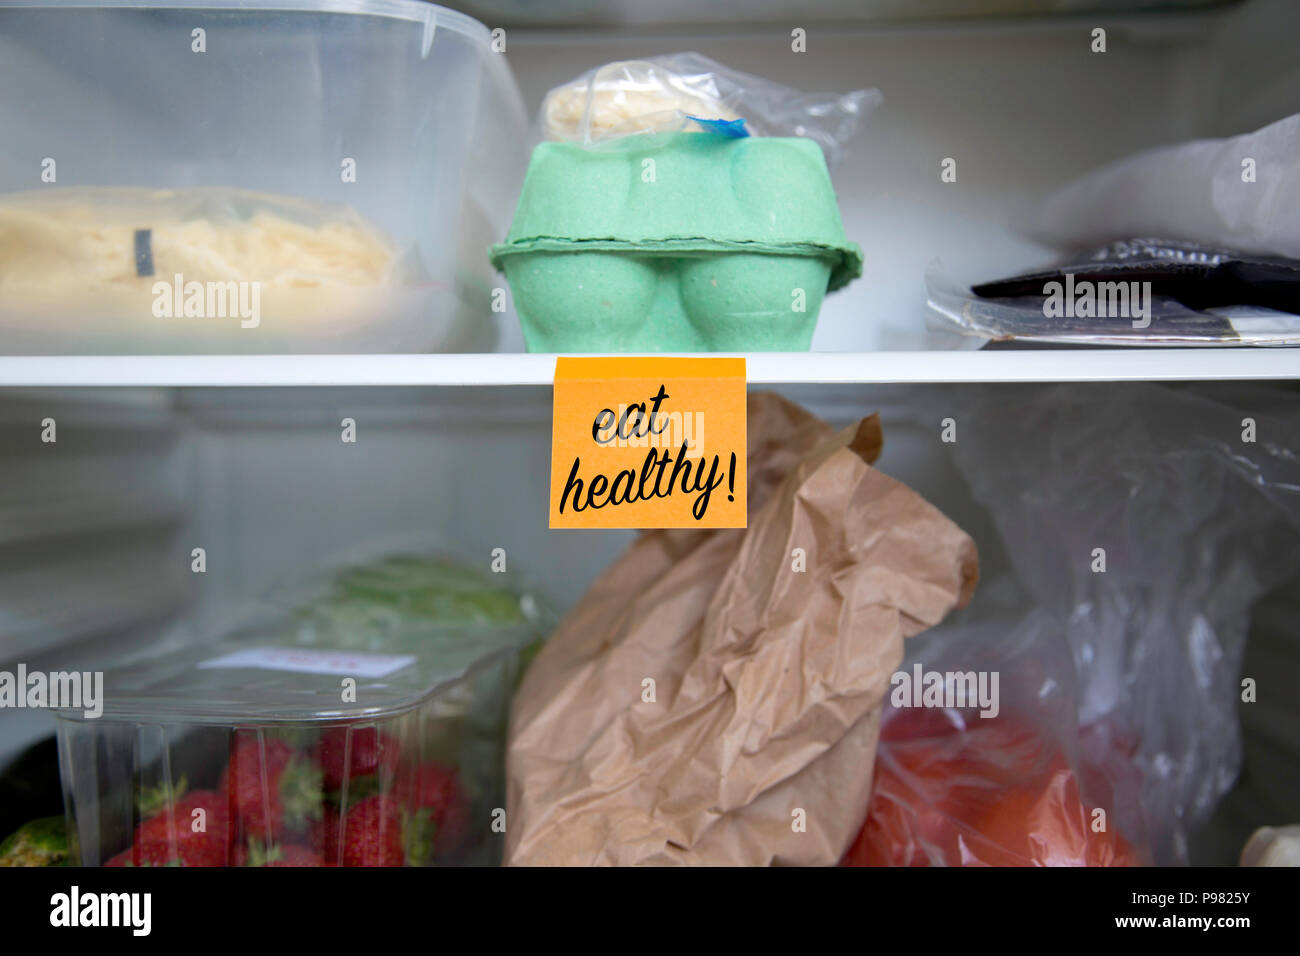 Eat healthy written on a post it note stuck on a fridge shelf with food - Stock Image